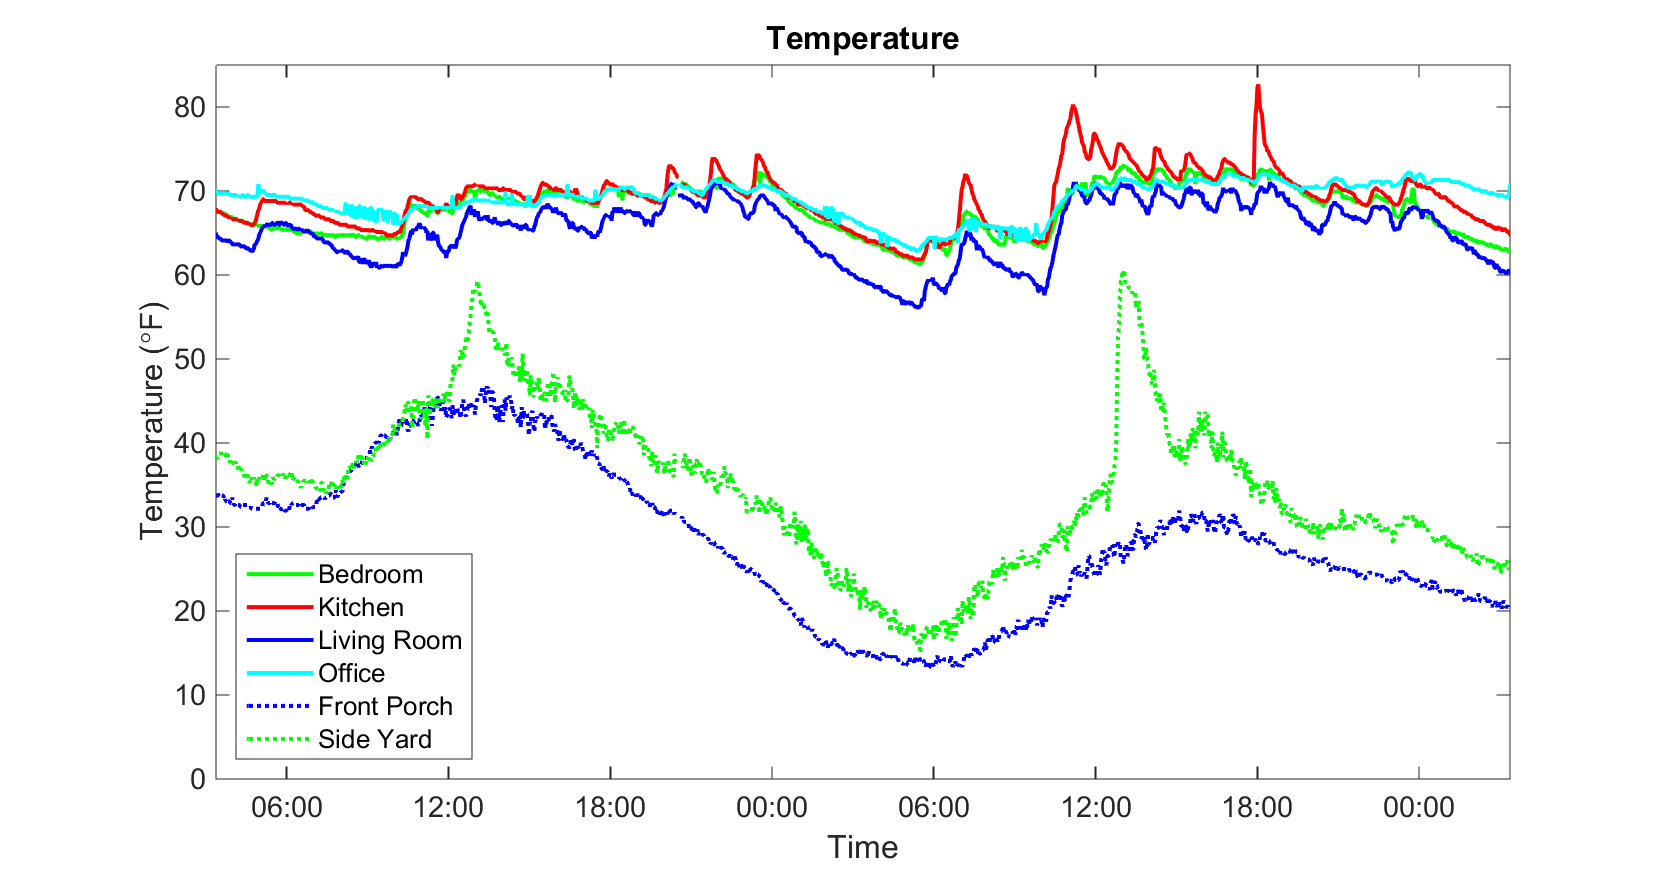 Continuous monitoring of wireless network of temperature